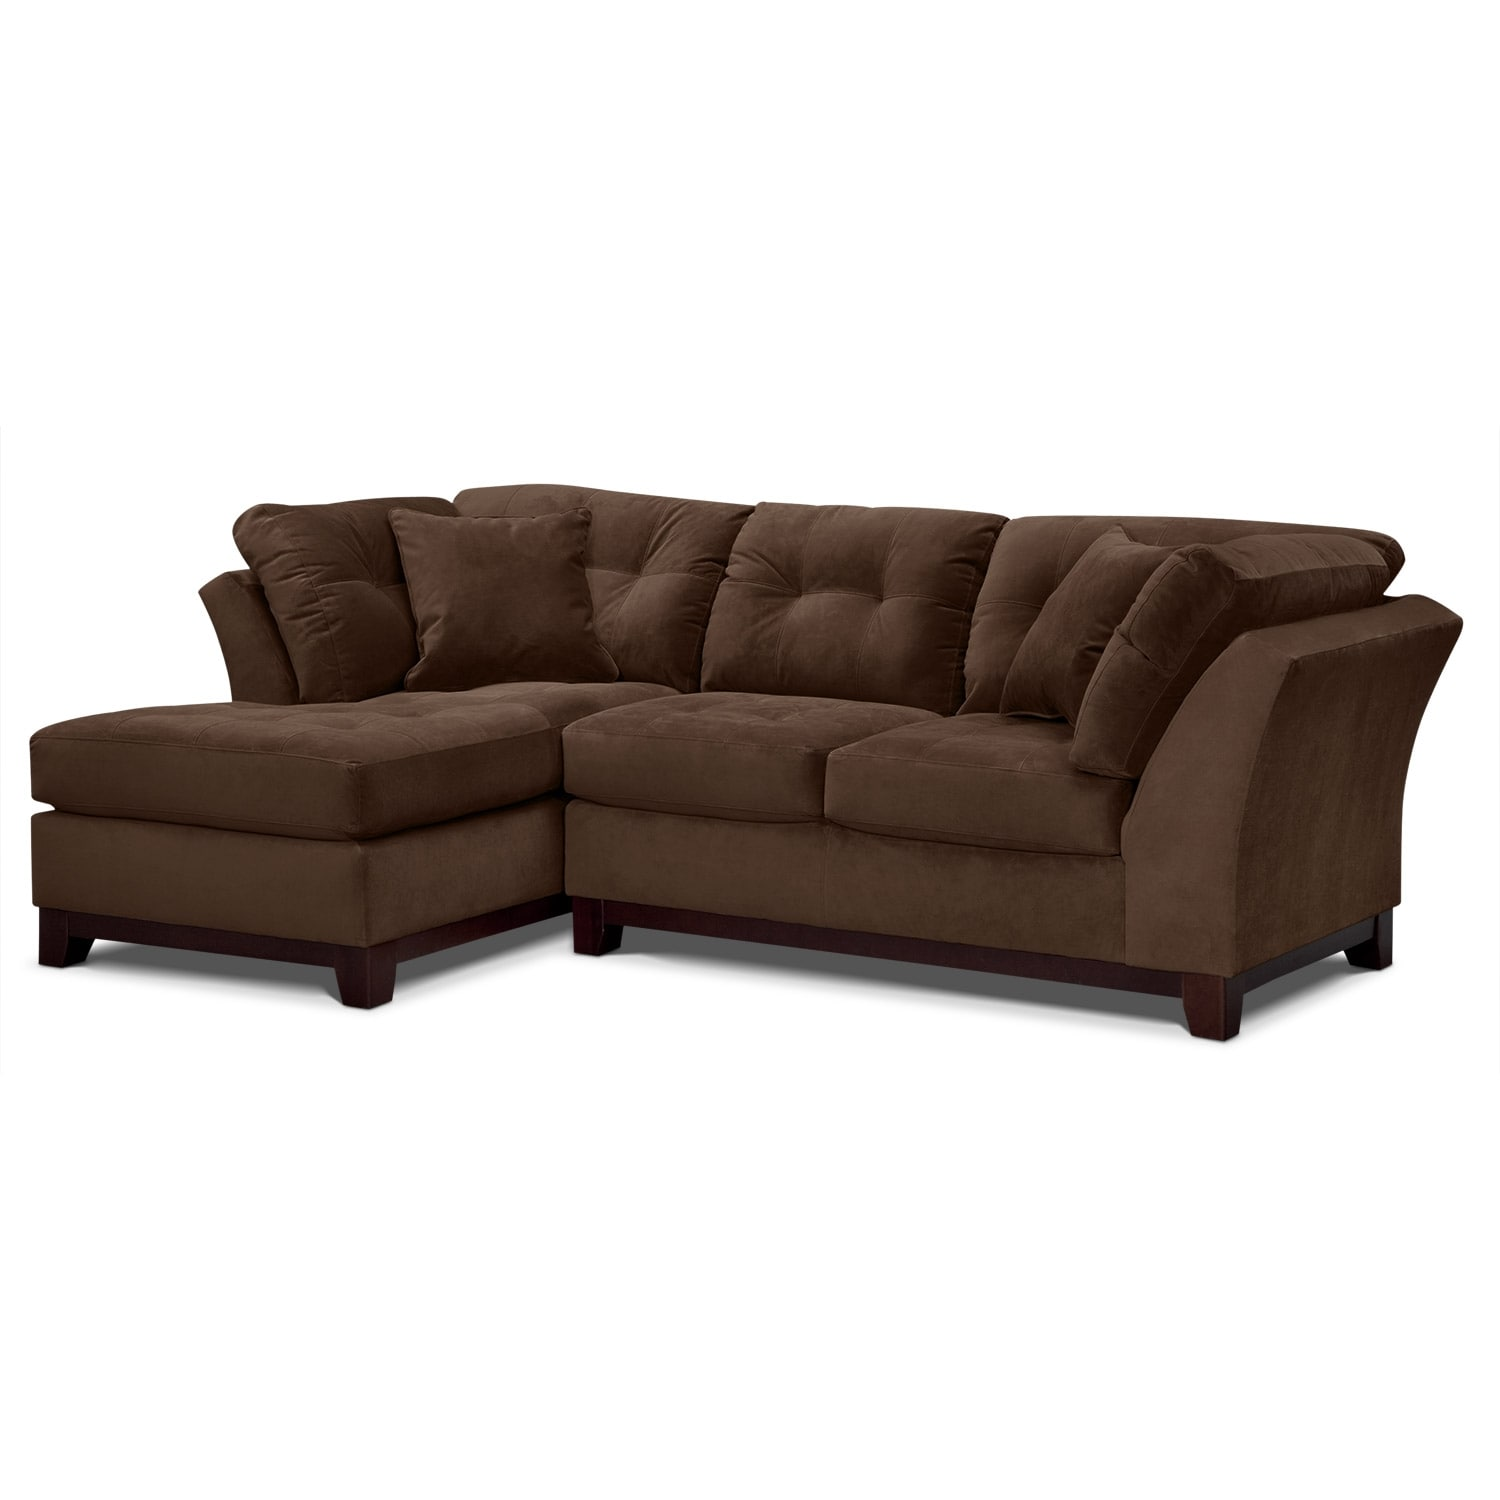 Solace 2-Piece Left-Facing Chaise Sectional - Chocolate